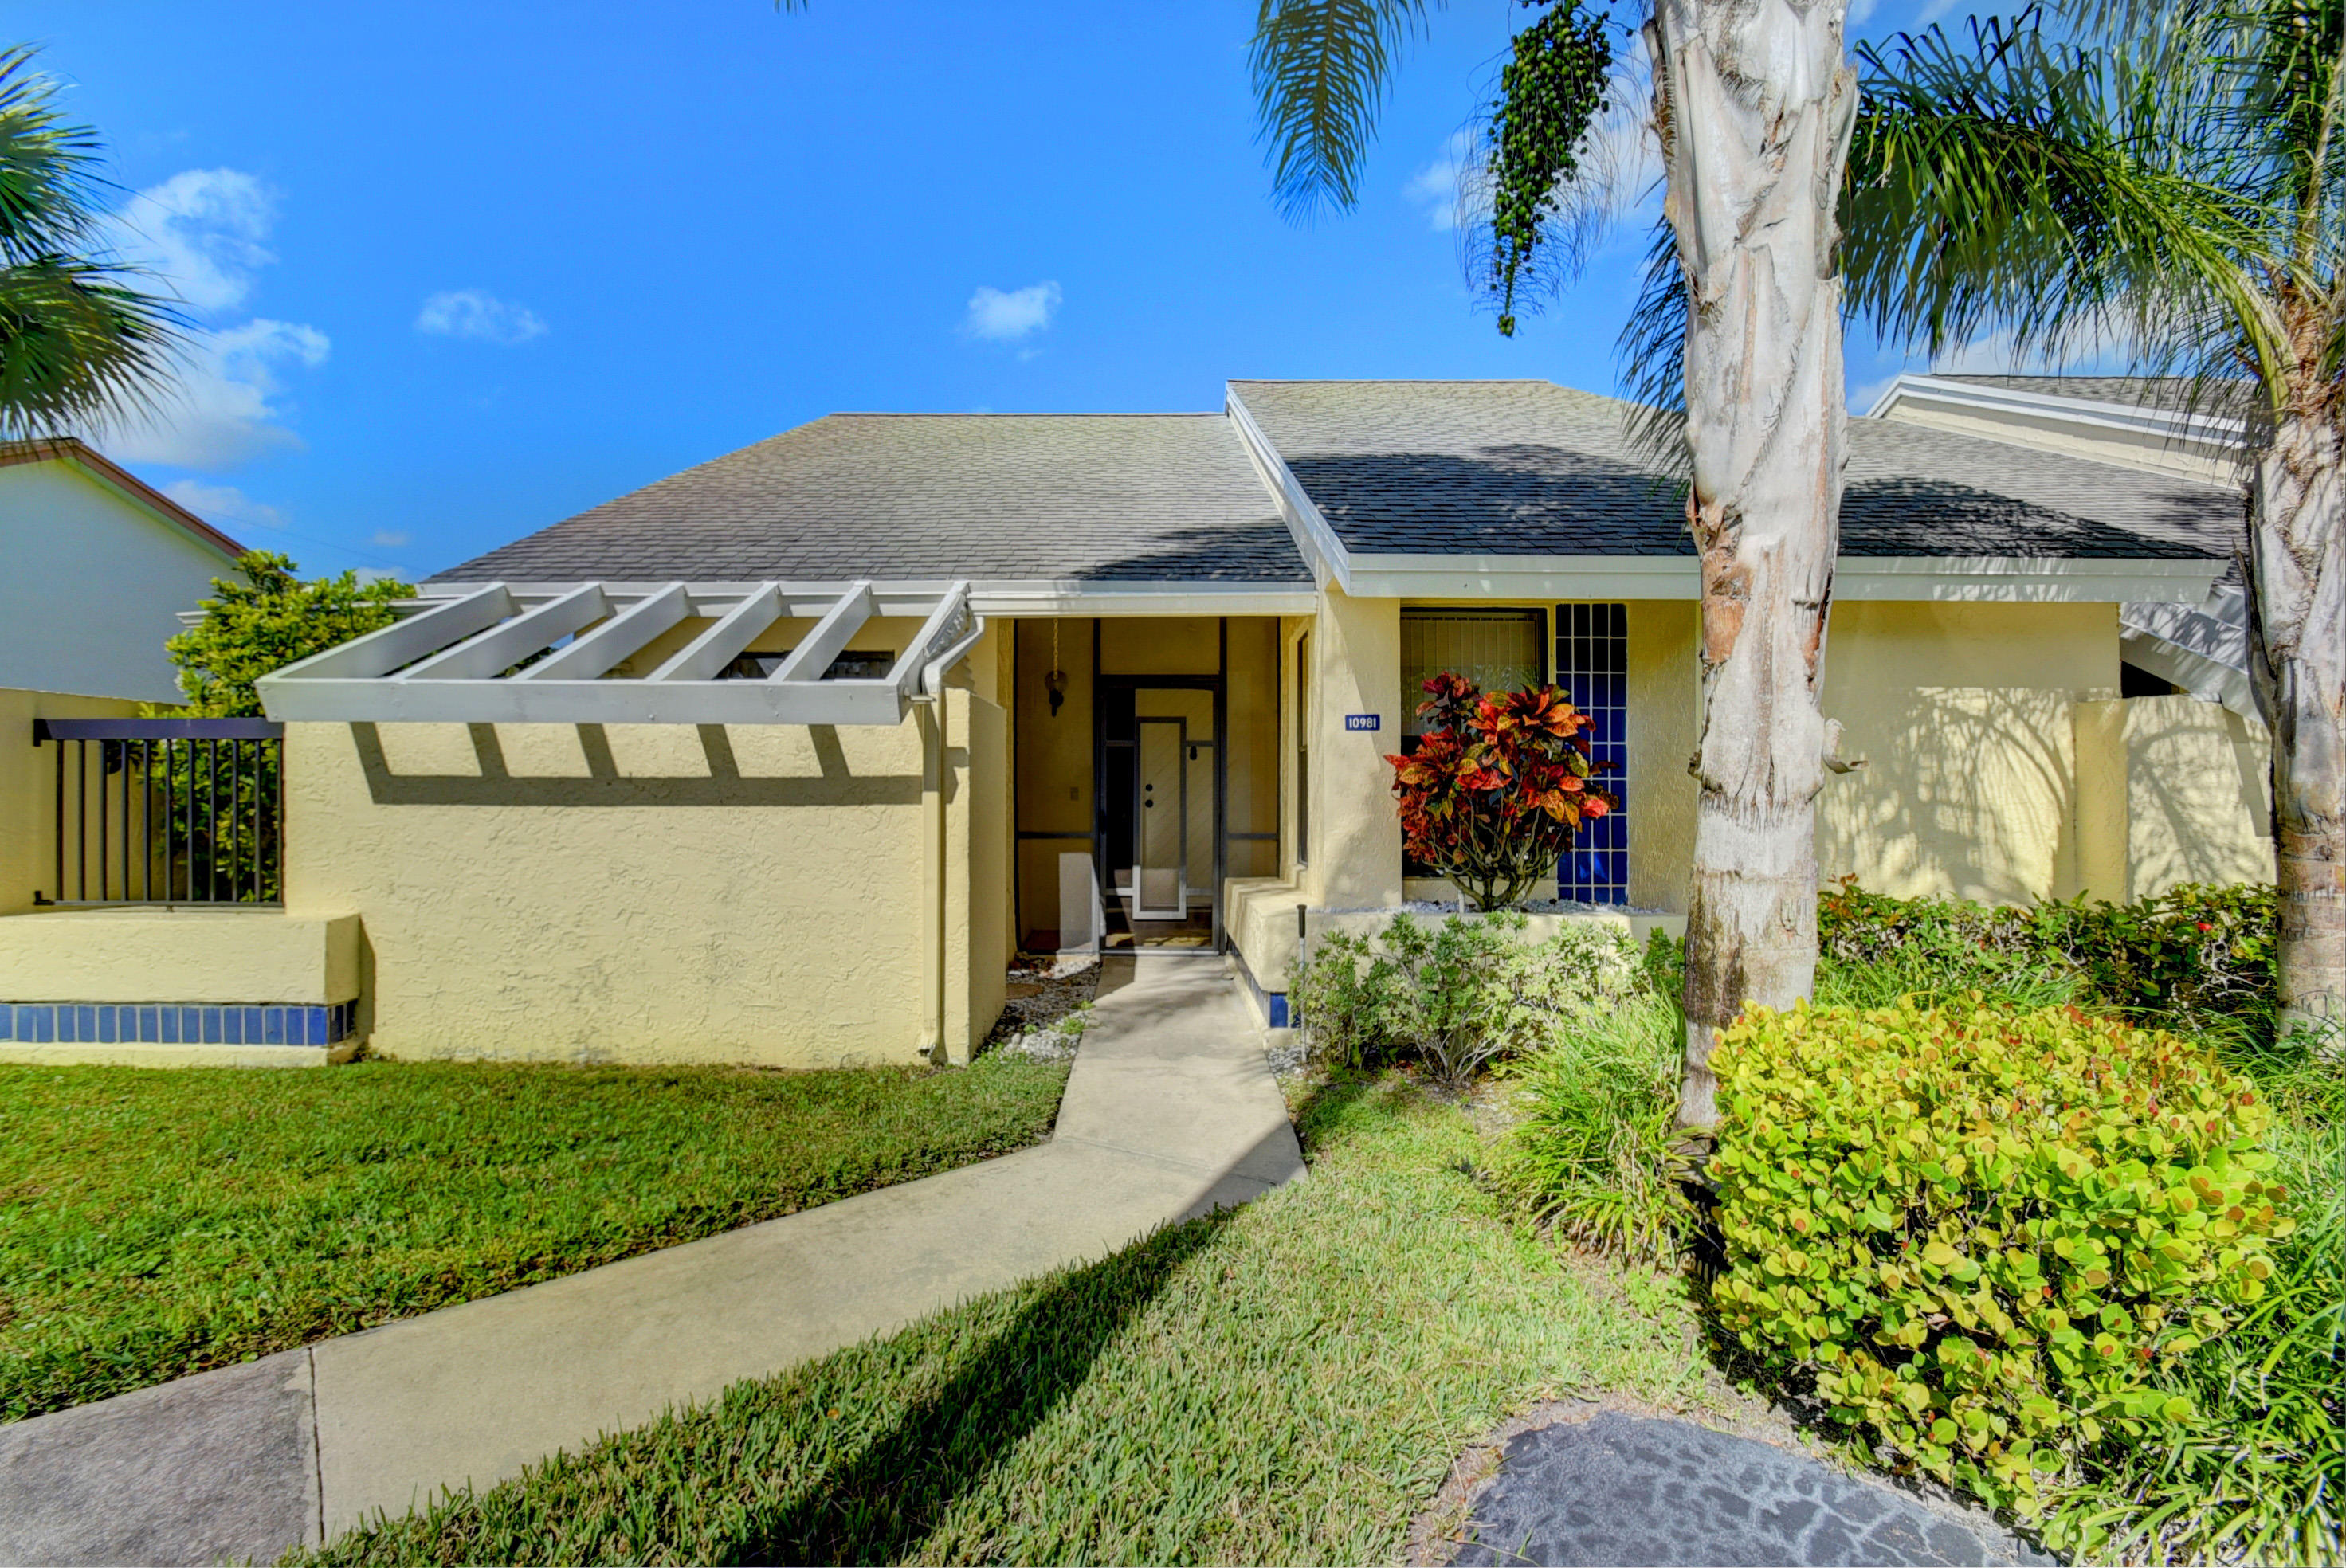 STUNNING HIGH-QUALITY RENOVATION!  SHOWS BEAUTIFULLY!!!  Corner Villa on Interior Cul-de-sac Lot!  Gorgeous kitchen w/high quality wood cabinets, Silestone Quartz countertops, modern tile backsplash, stainless steel appliances, pull-out shelving, undermount sink, upgraded faucet & hardware. Beautifully renovated baths! Large Florida Room with roll down shutters.  Modern tile floors. New high hats. New interior paint. A/C-2016. Eco-friendly Tankless Waterheater!  2 Car Parking Right in Front. Exterior painted-2016.  Gated Community w/active clubhouse, pool, tennis, sauna, fitness room, BBQ area, pier. 2 pets welcome. HOA covers exterior paint, lawn, cable, clubhouse, gate. Lovely West Boca area. Convenient to The Reserve Plaza, Delray Marketplace, shopping, dining, & major thoroughfares.